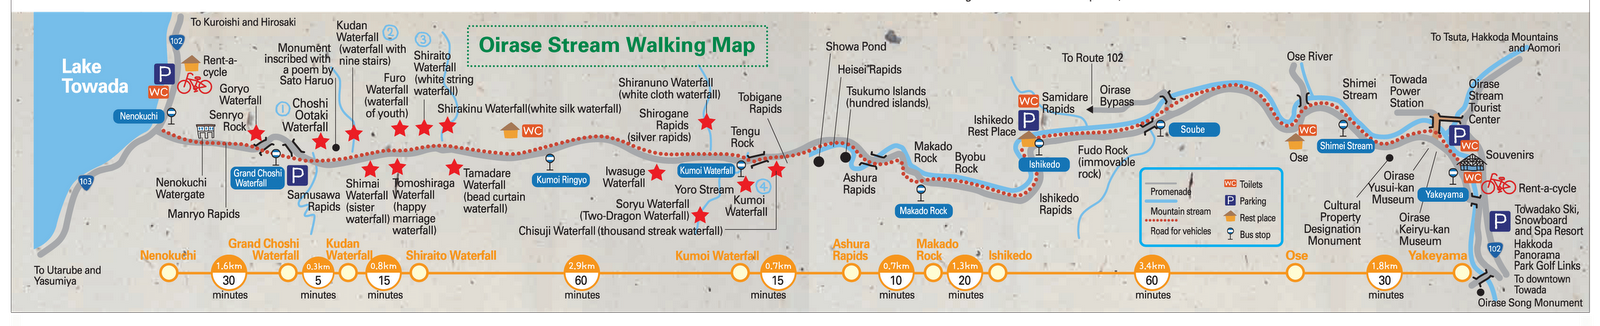 Oirase Walking Map